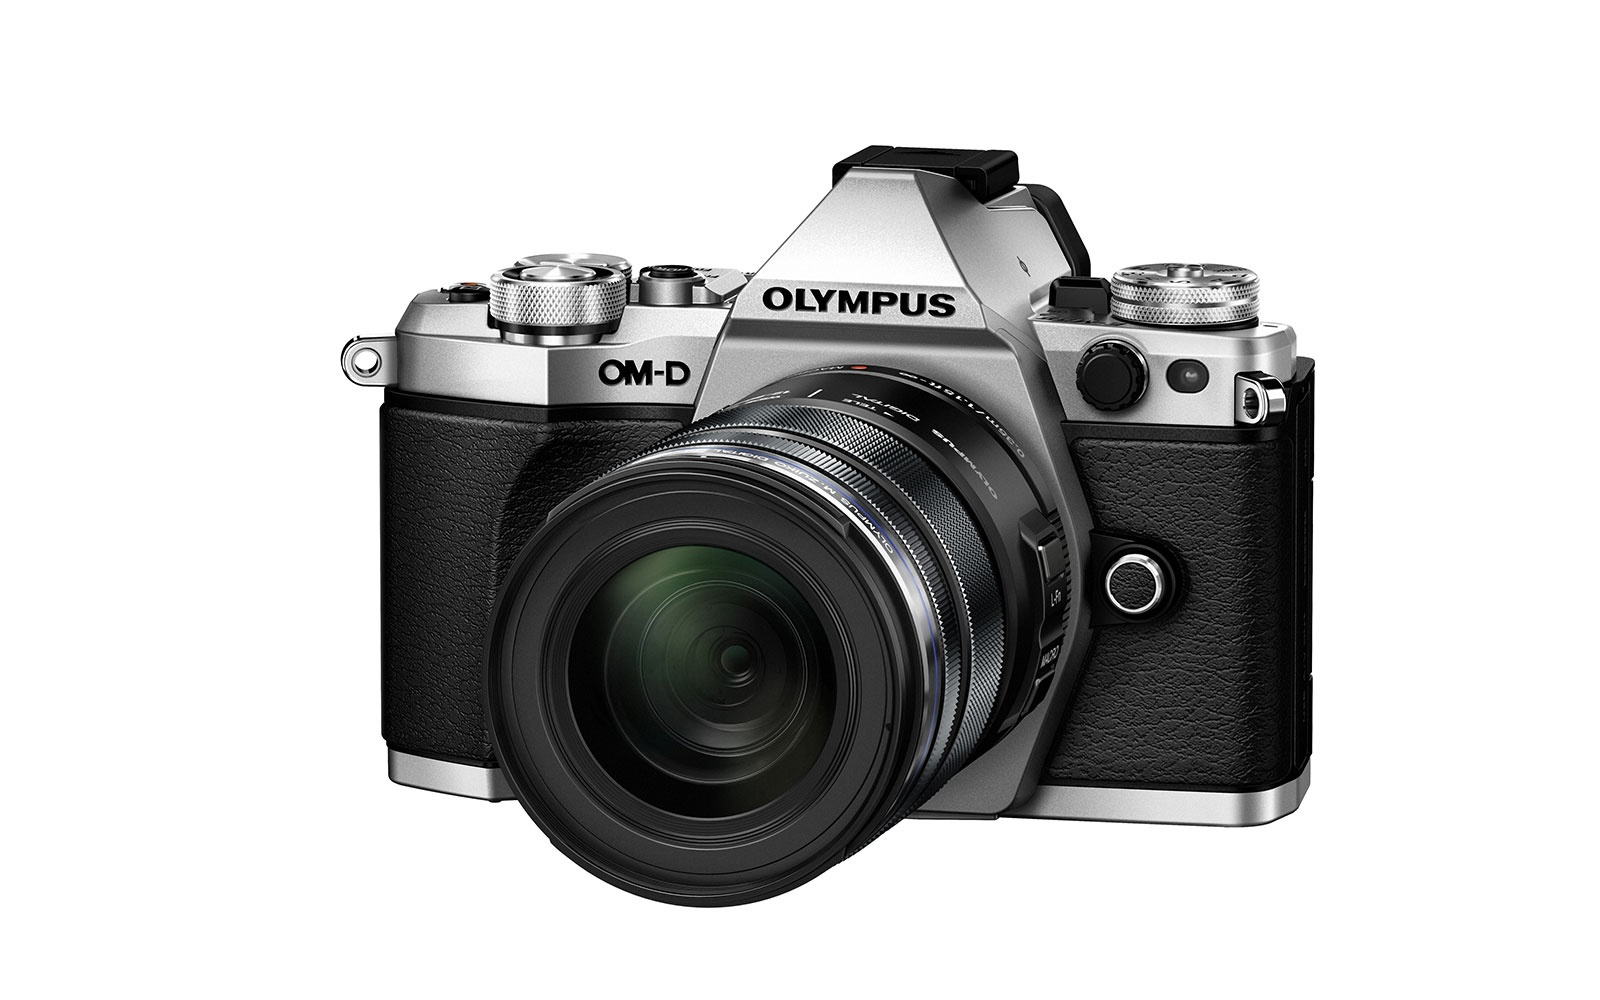 Olympus OM-D E-M5 Mark II mirrorless camera